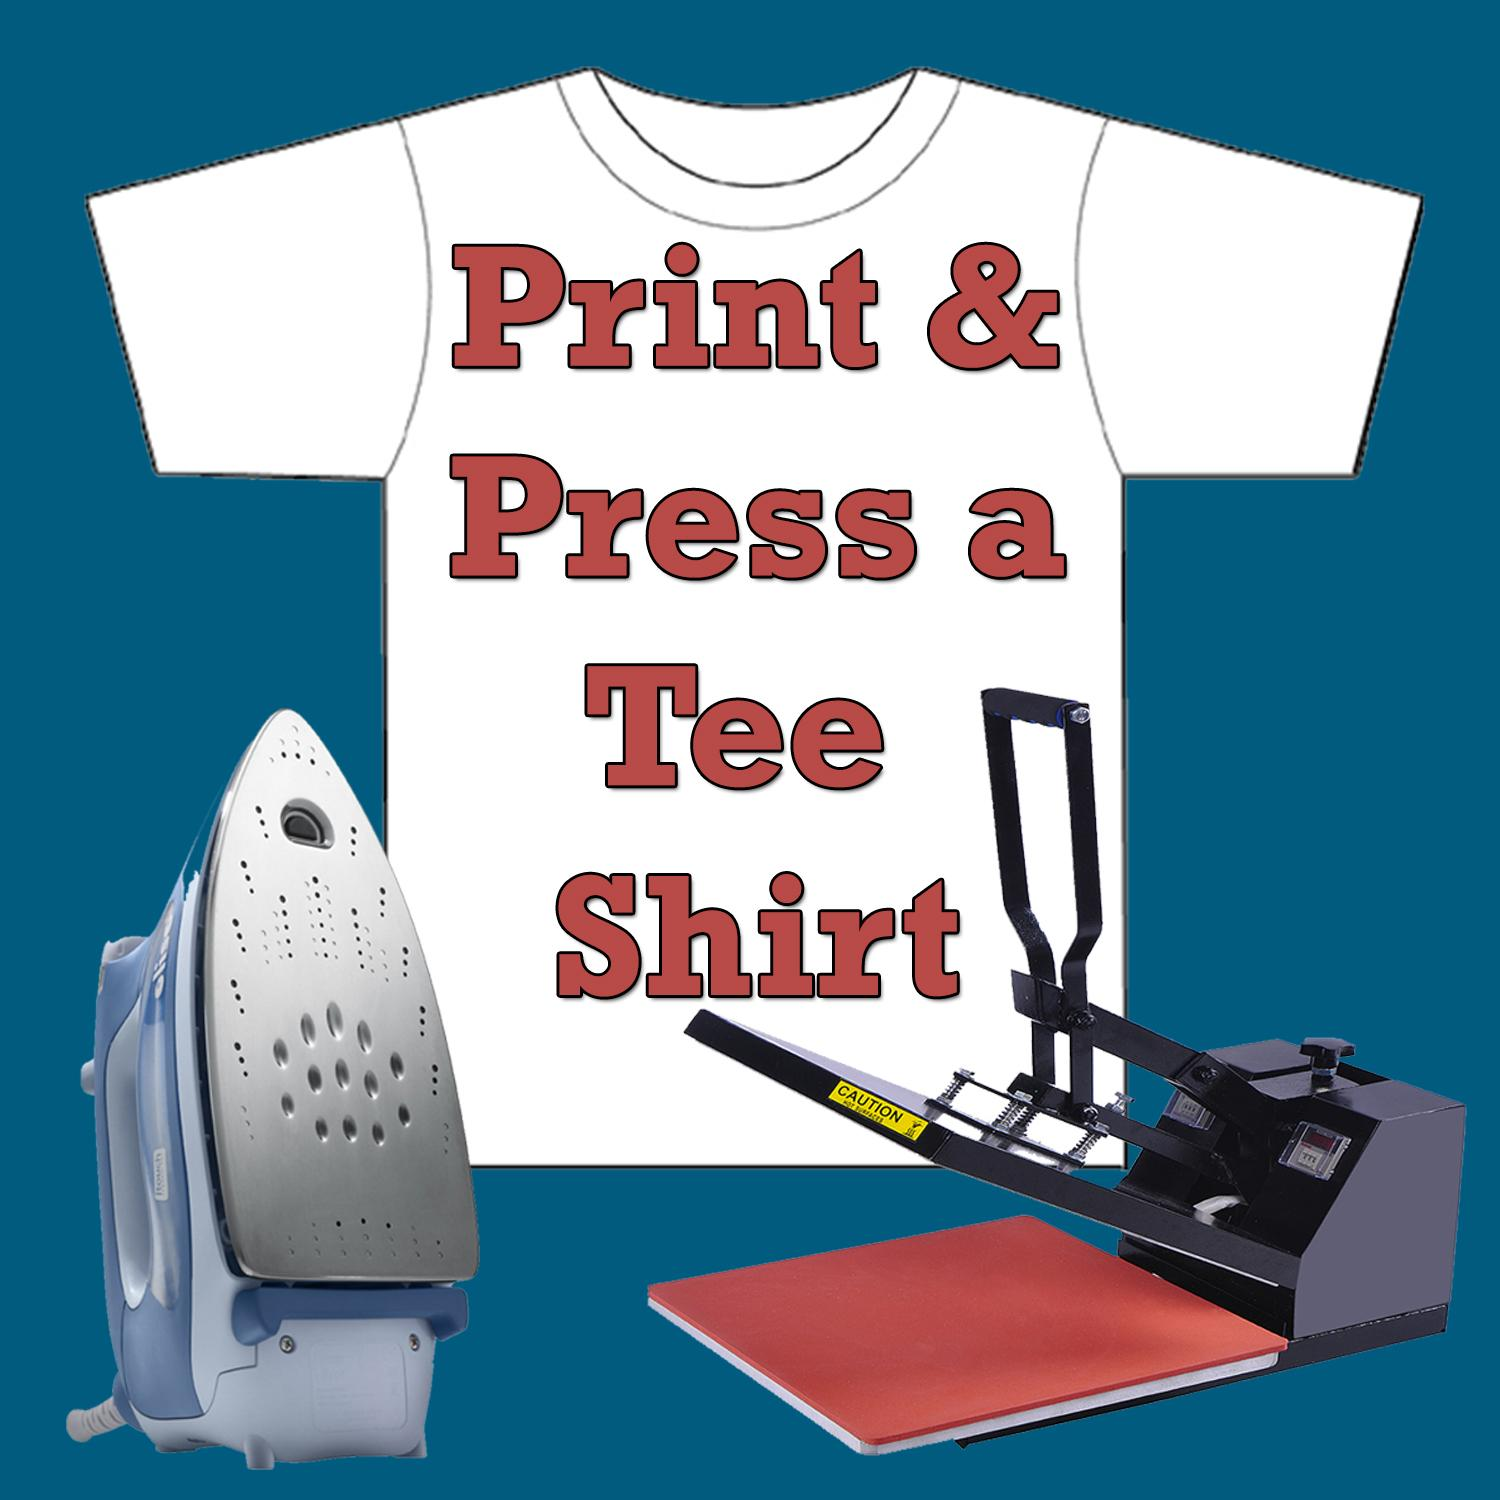 d9036b2e T Shirt Making: Print & Press Your Own T Shirt at Home | Rahim Samad ...